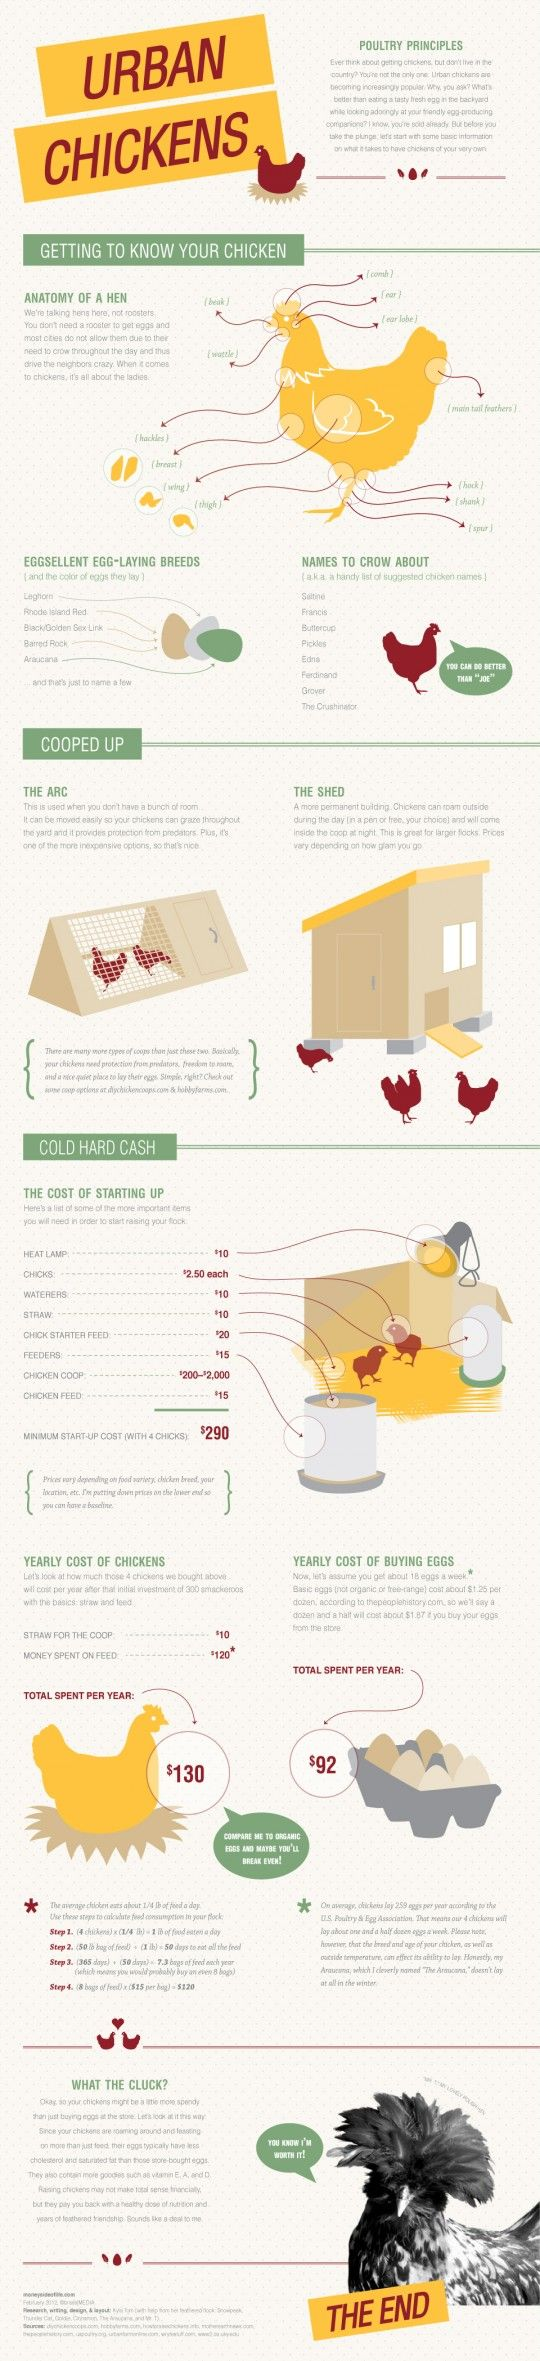 Raising chickens in an urban or suburban neighborhood is becoming a popular trend. | Check out these tips on raising chickens in the city #survivallife www.survivallife.com